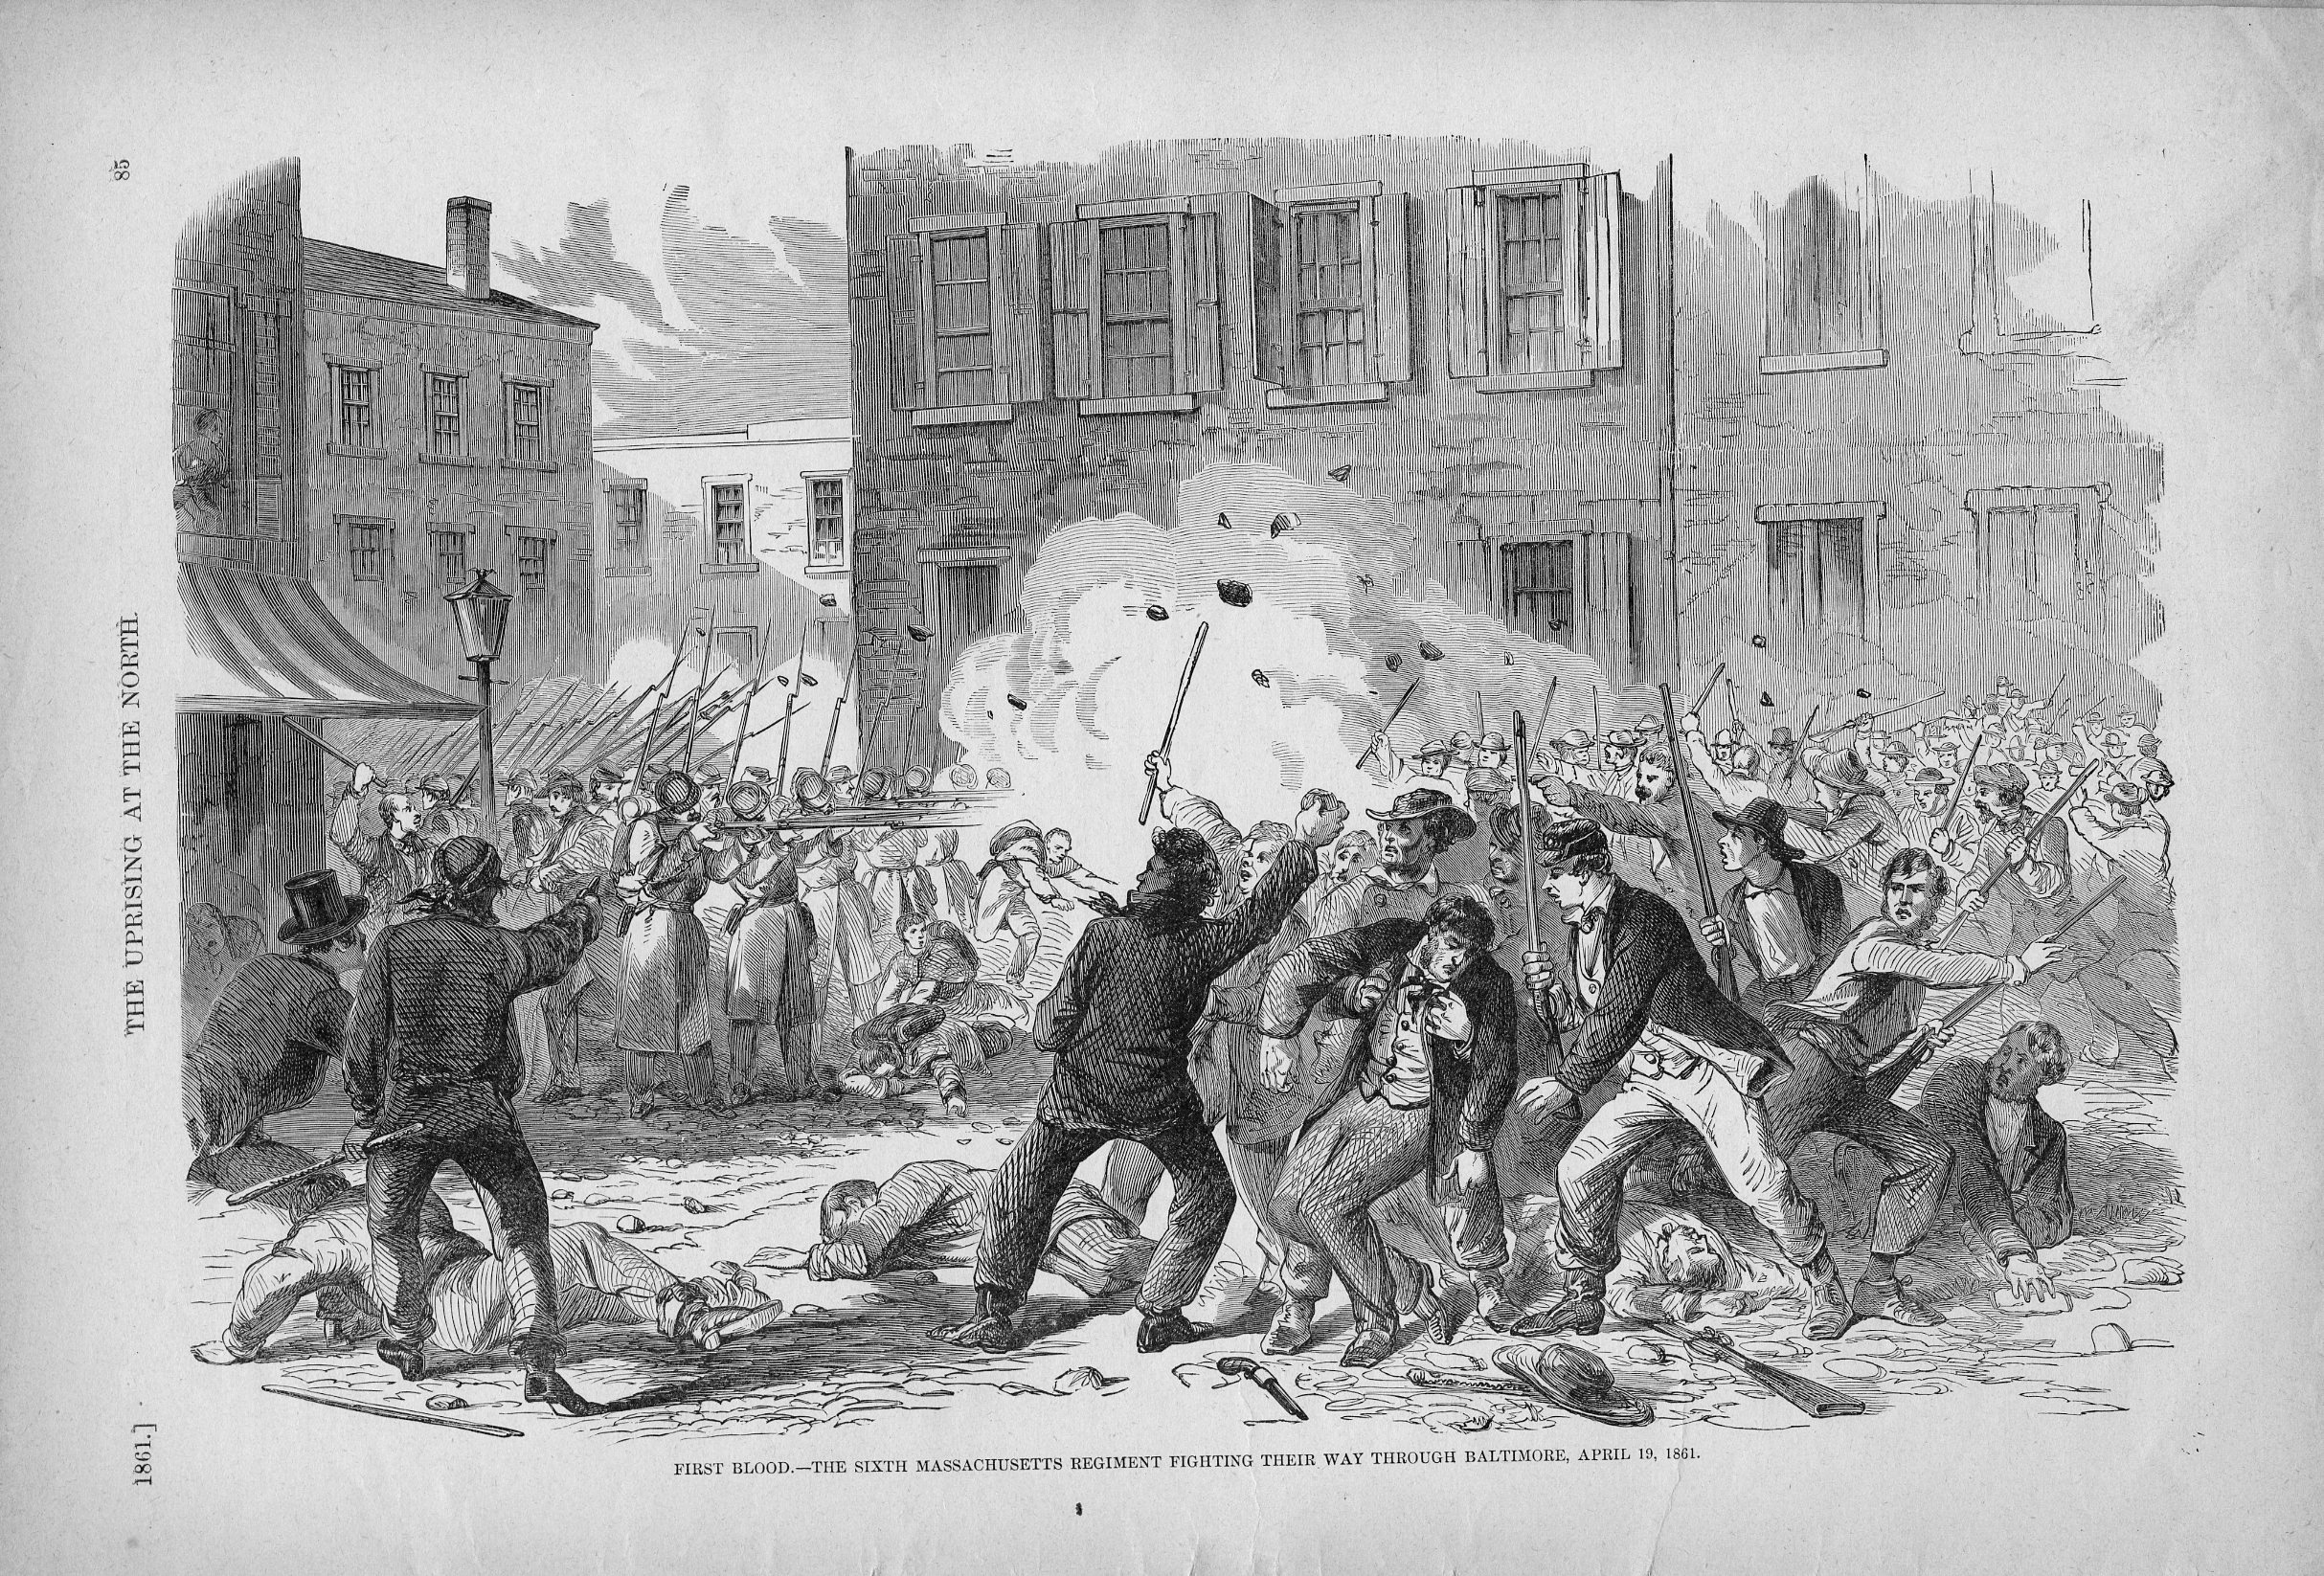 1861 April 19: Baltimore Riot | The Civil War and Northwest Wisconsin